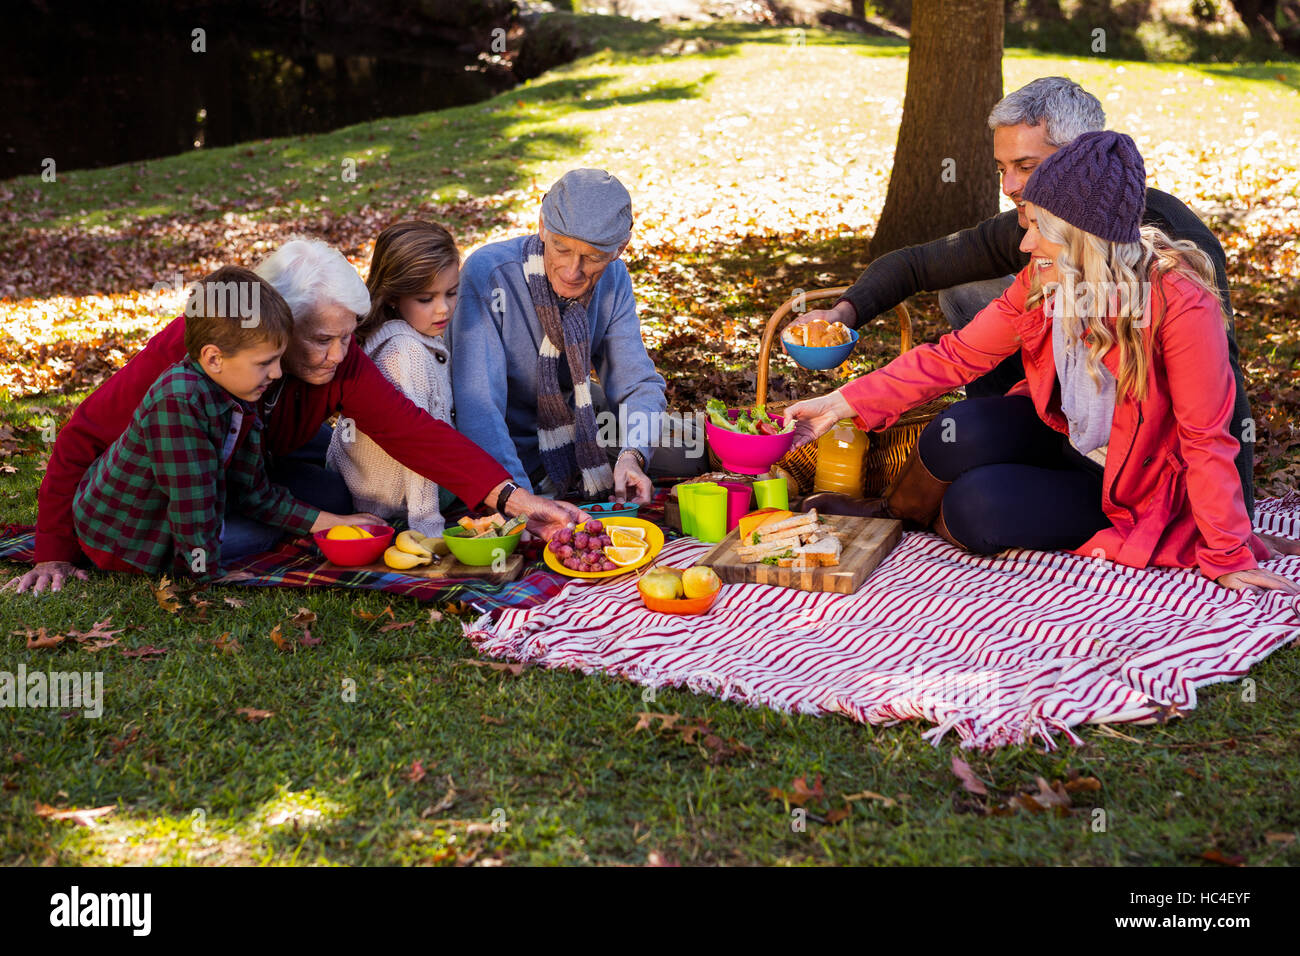 Family picnicking - Stock Image